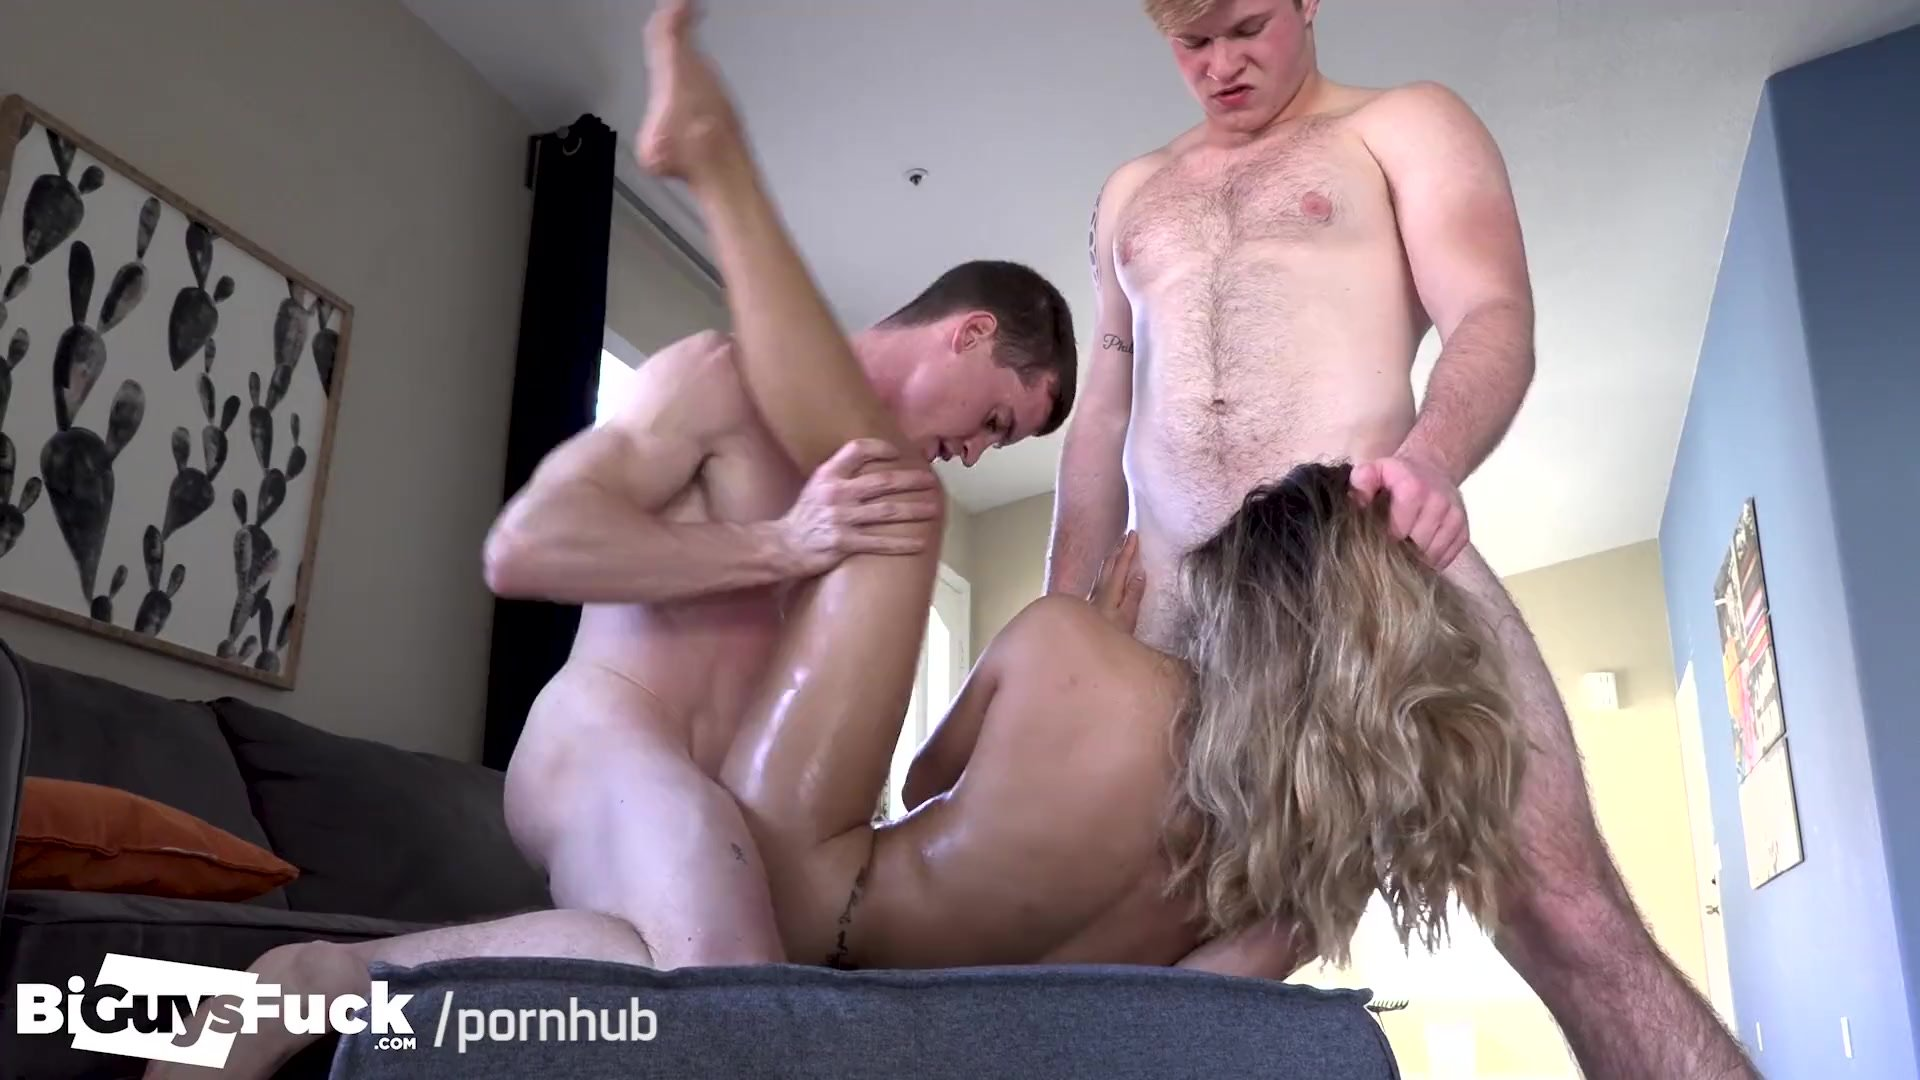 SEXY AF! Asian Sexy Girl Gets 2 Hot Jocks To Fuck Her & Each Other!